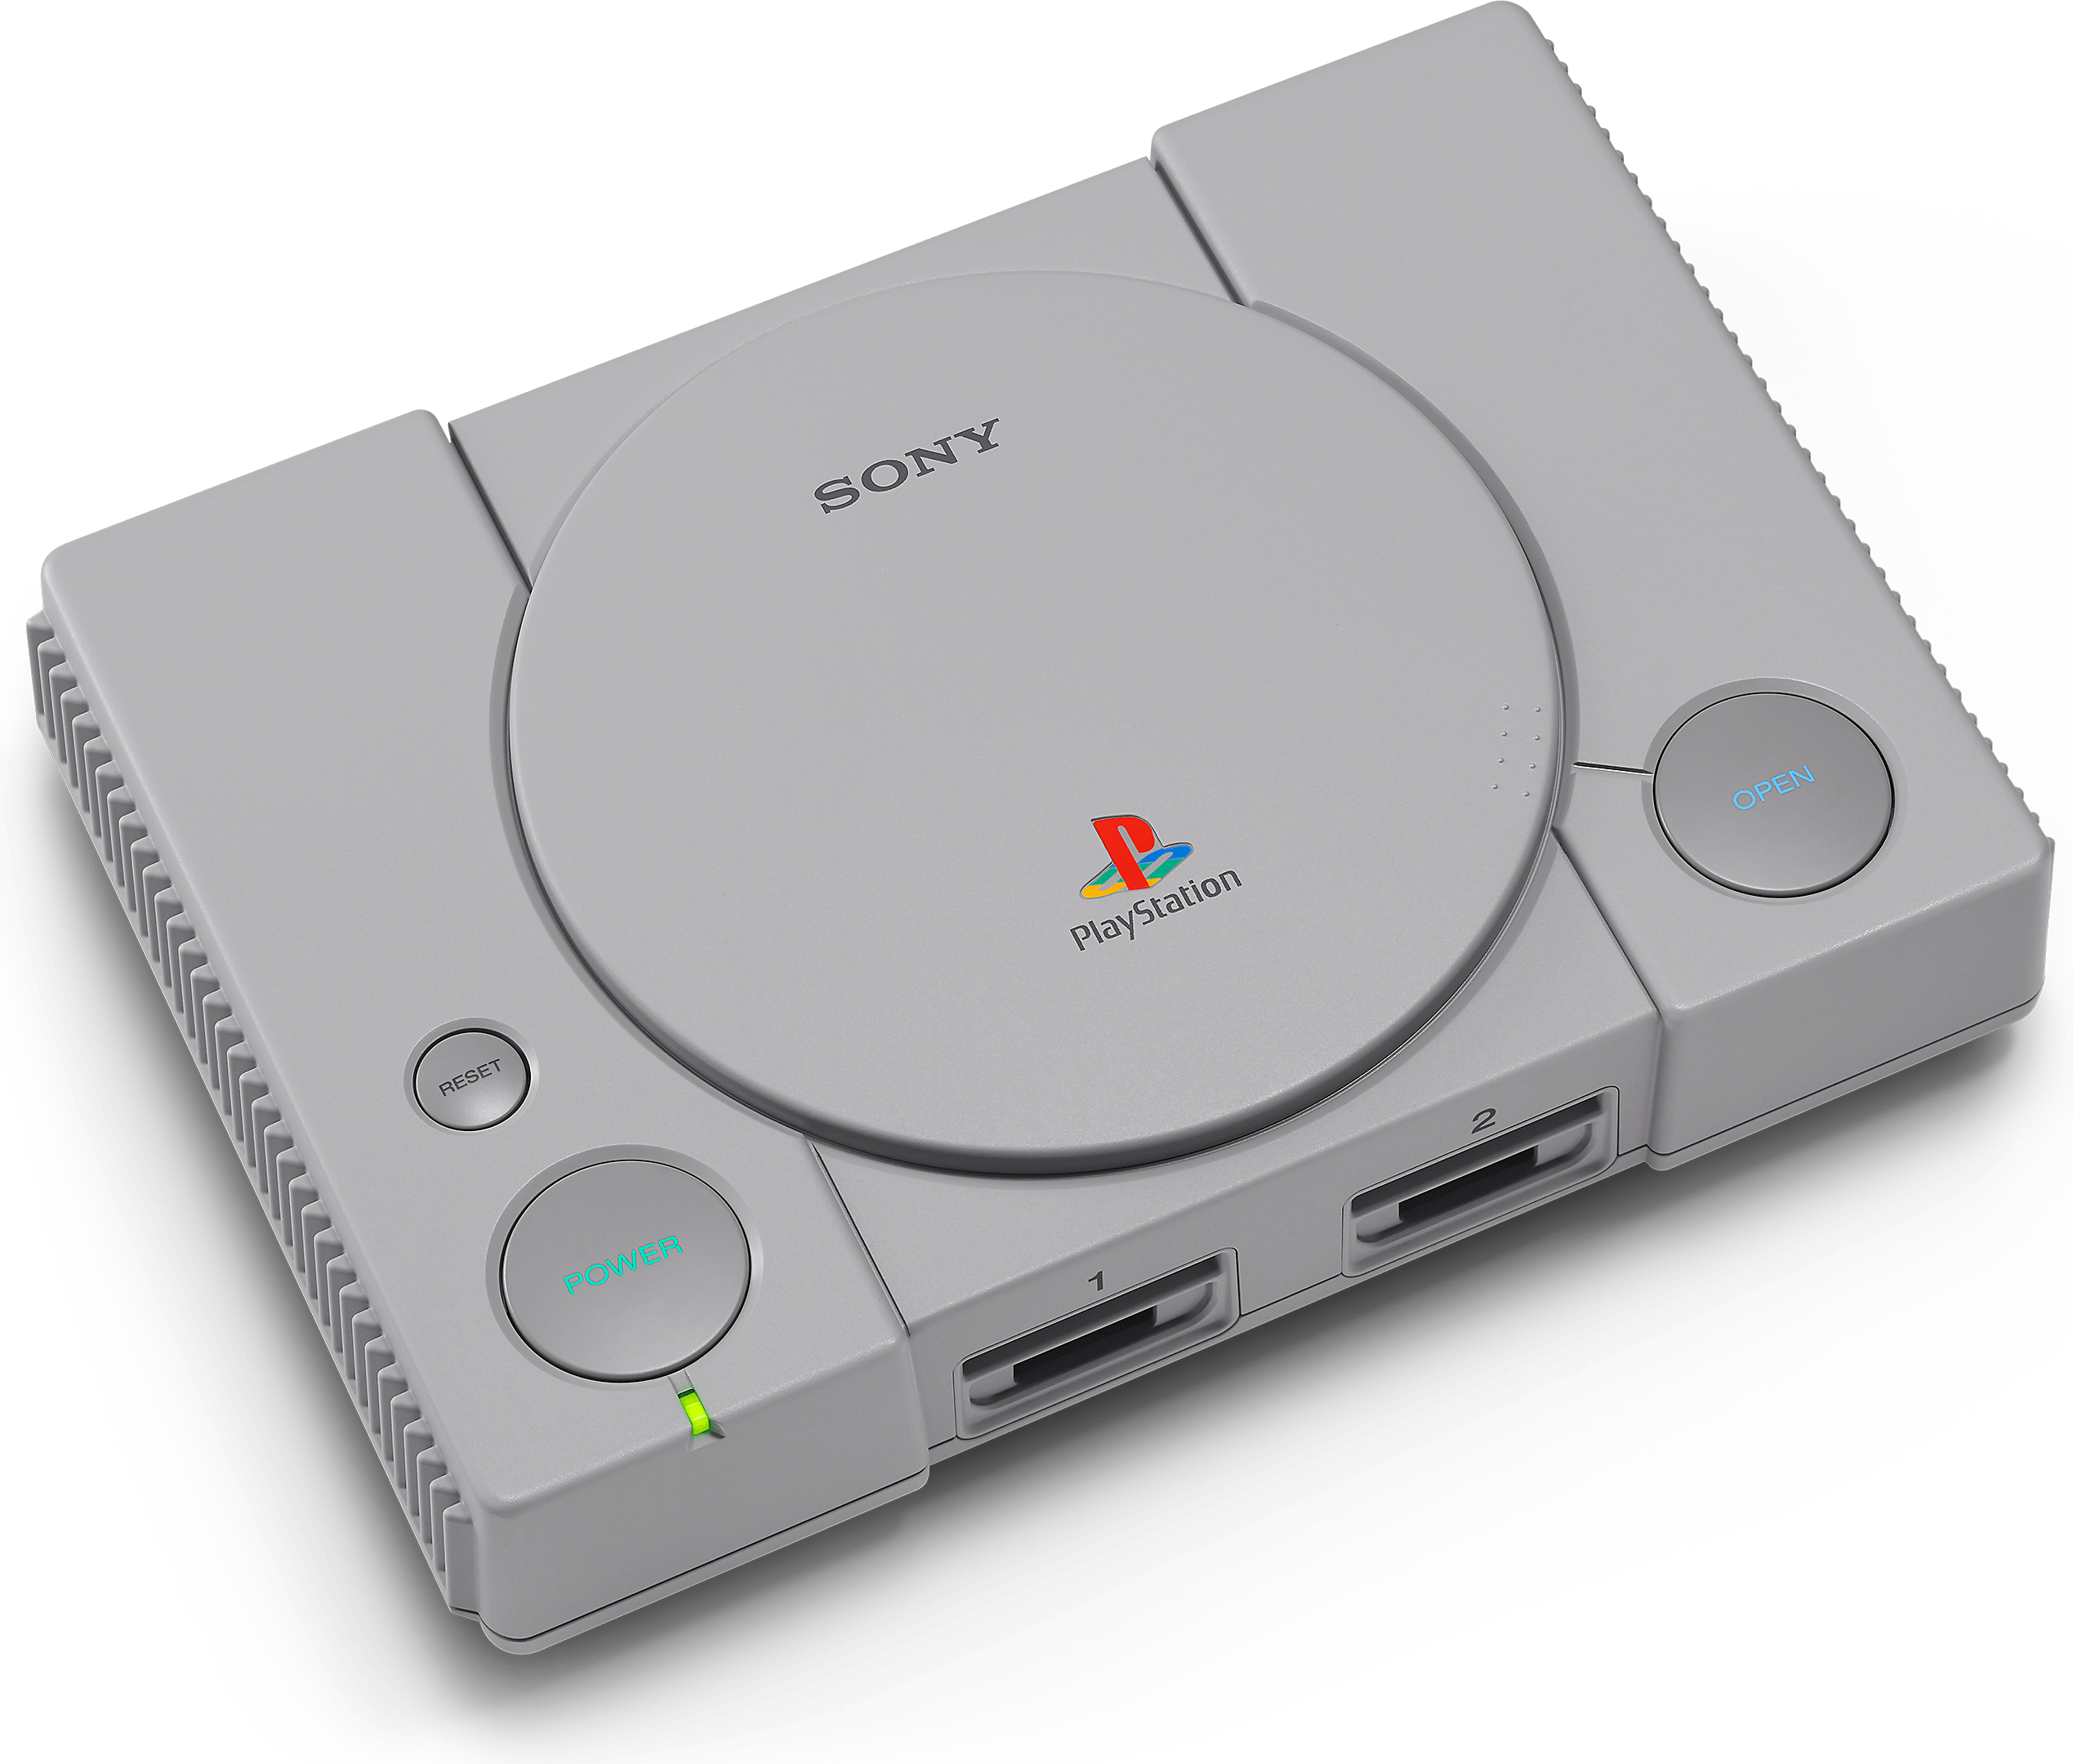 Sony's PlayStation Classic video gaming system